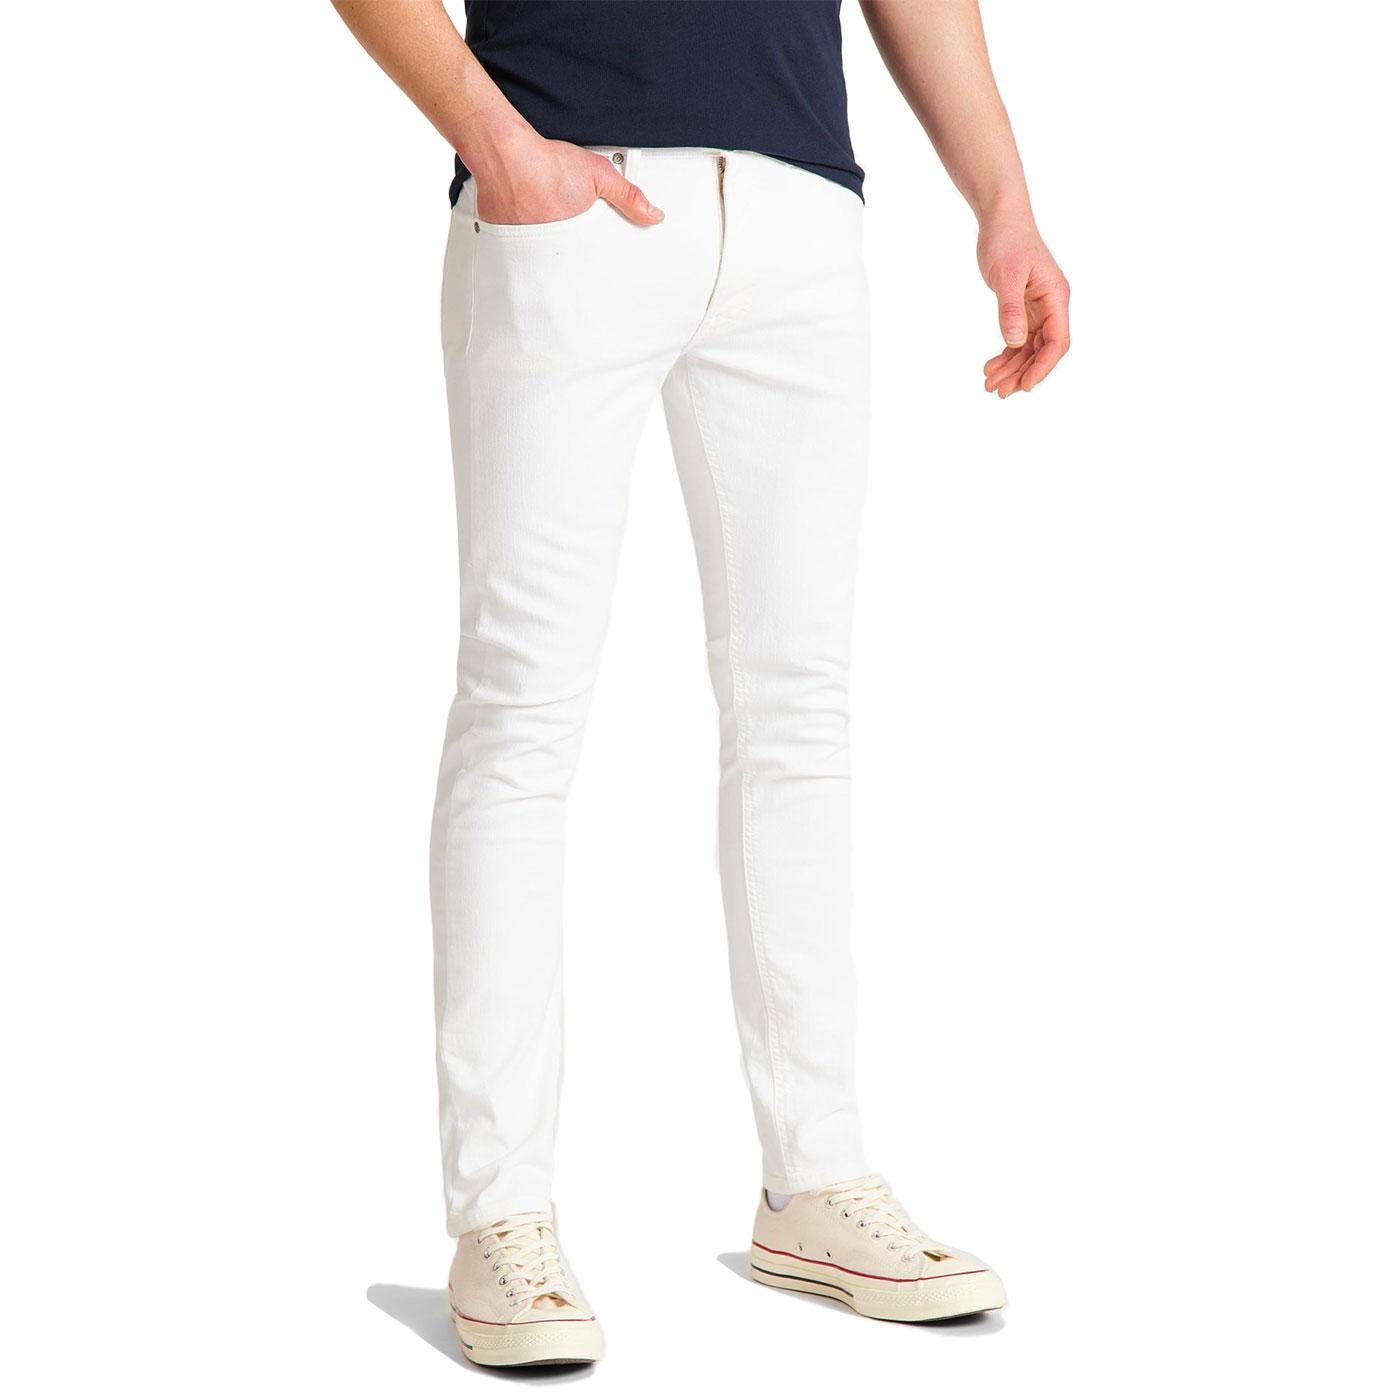 Luke LEE JEANS Retro Mod Slim Tapered White Jeans